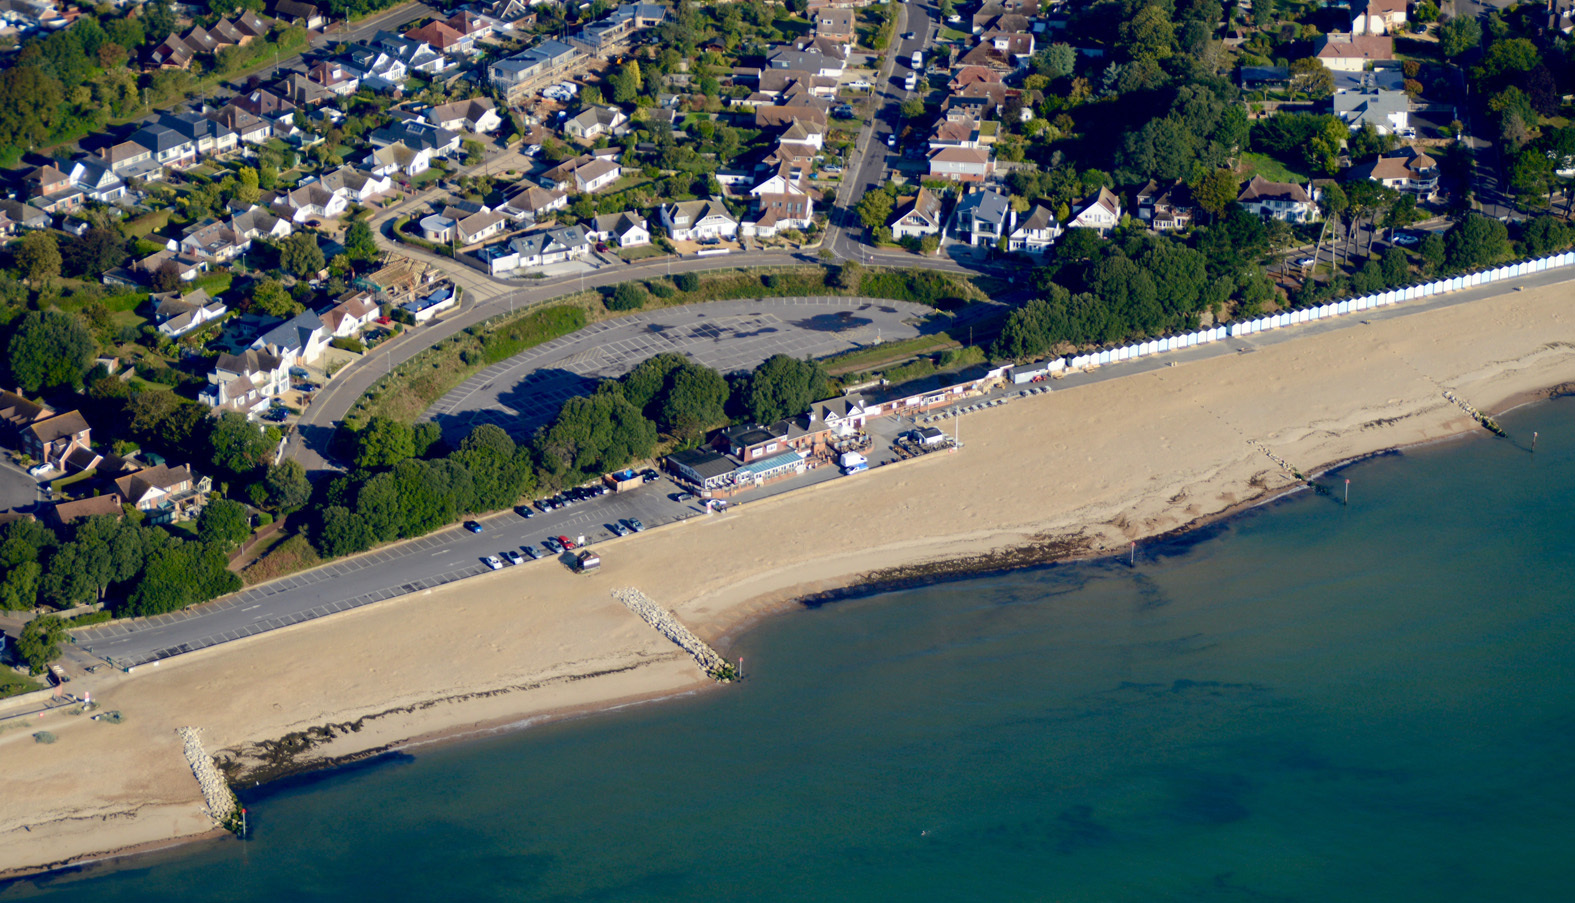 Aerial View of Avon Beach, Christchurch. Picture by Stephen Bath.